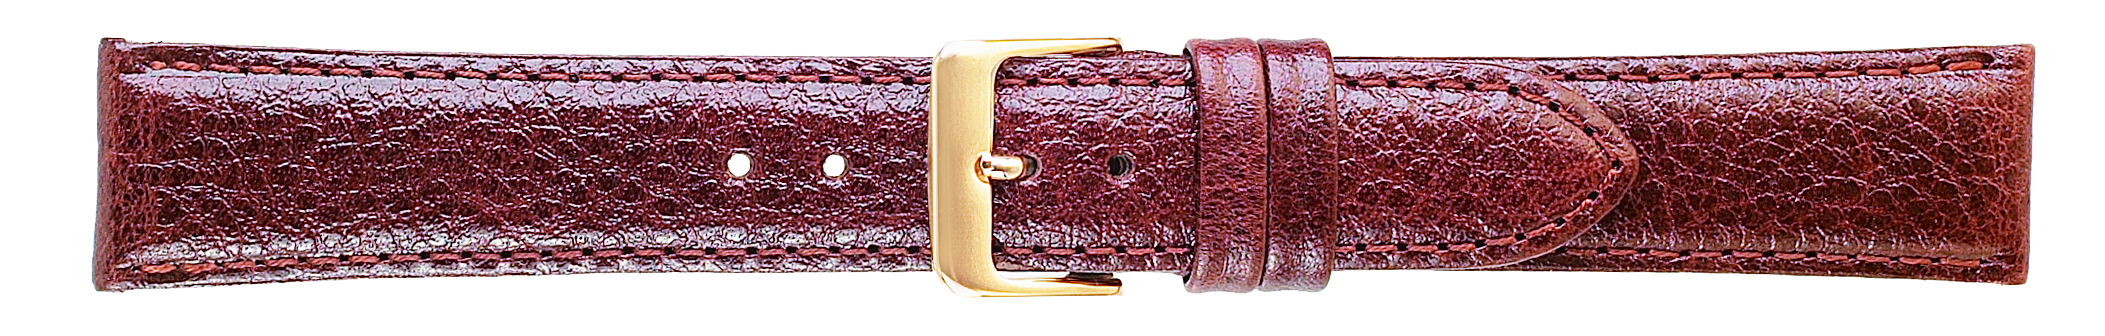 20MM Polished Calf Brown Leather Strap -0